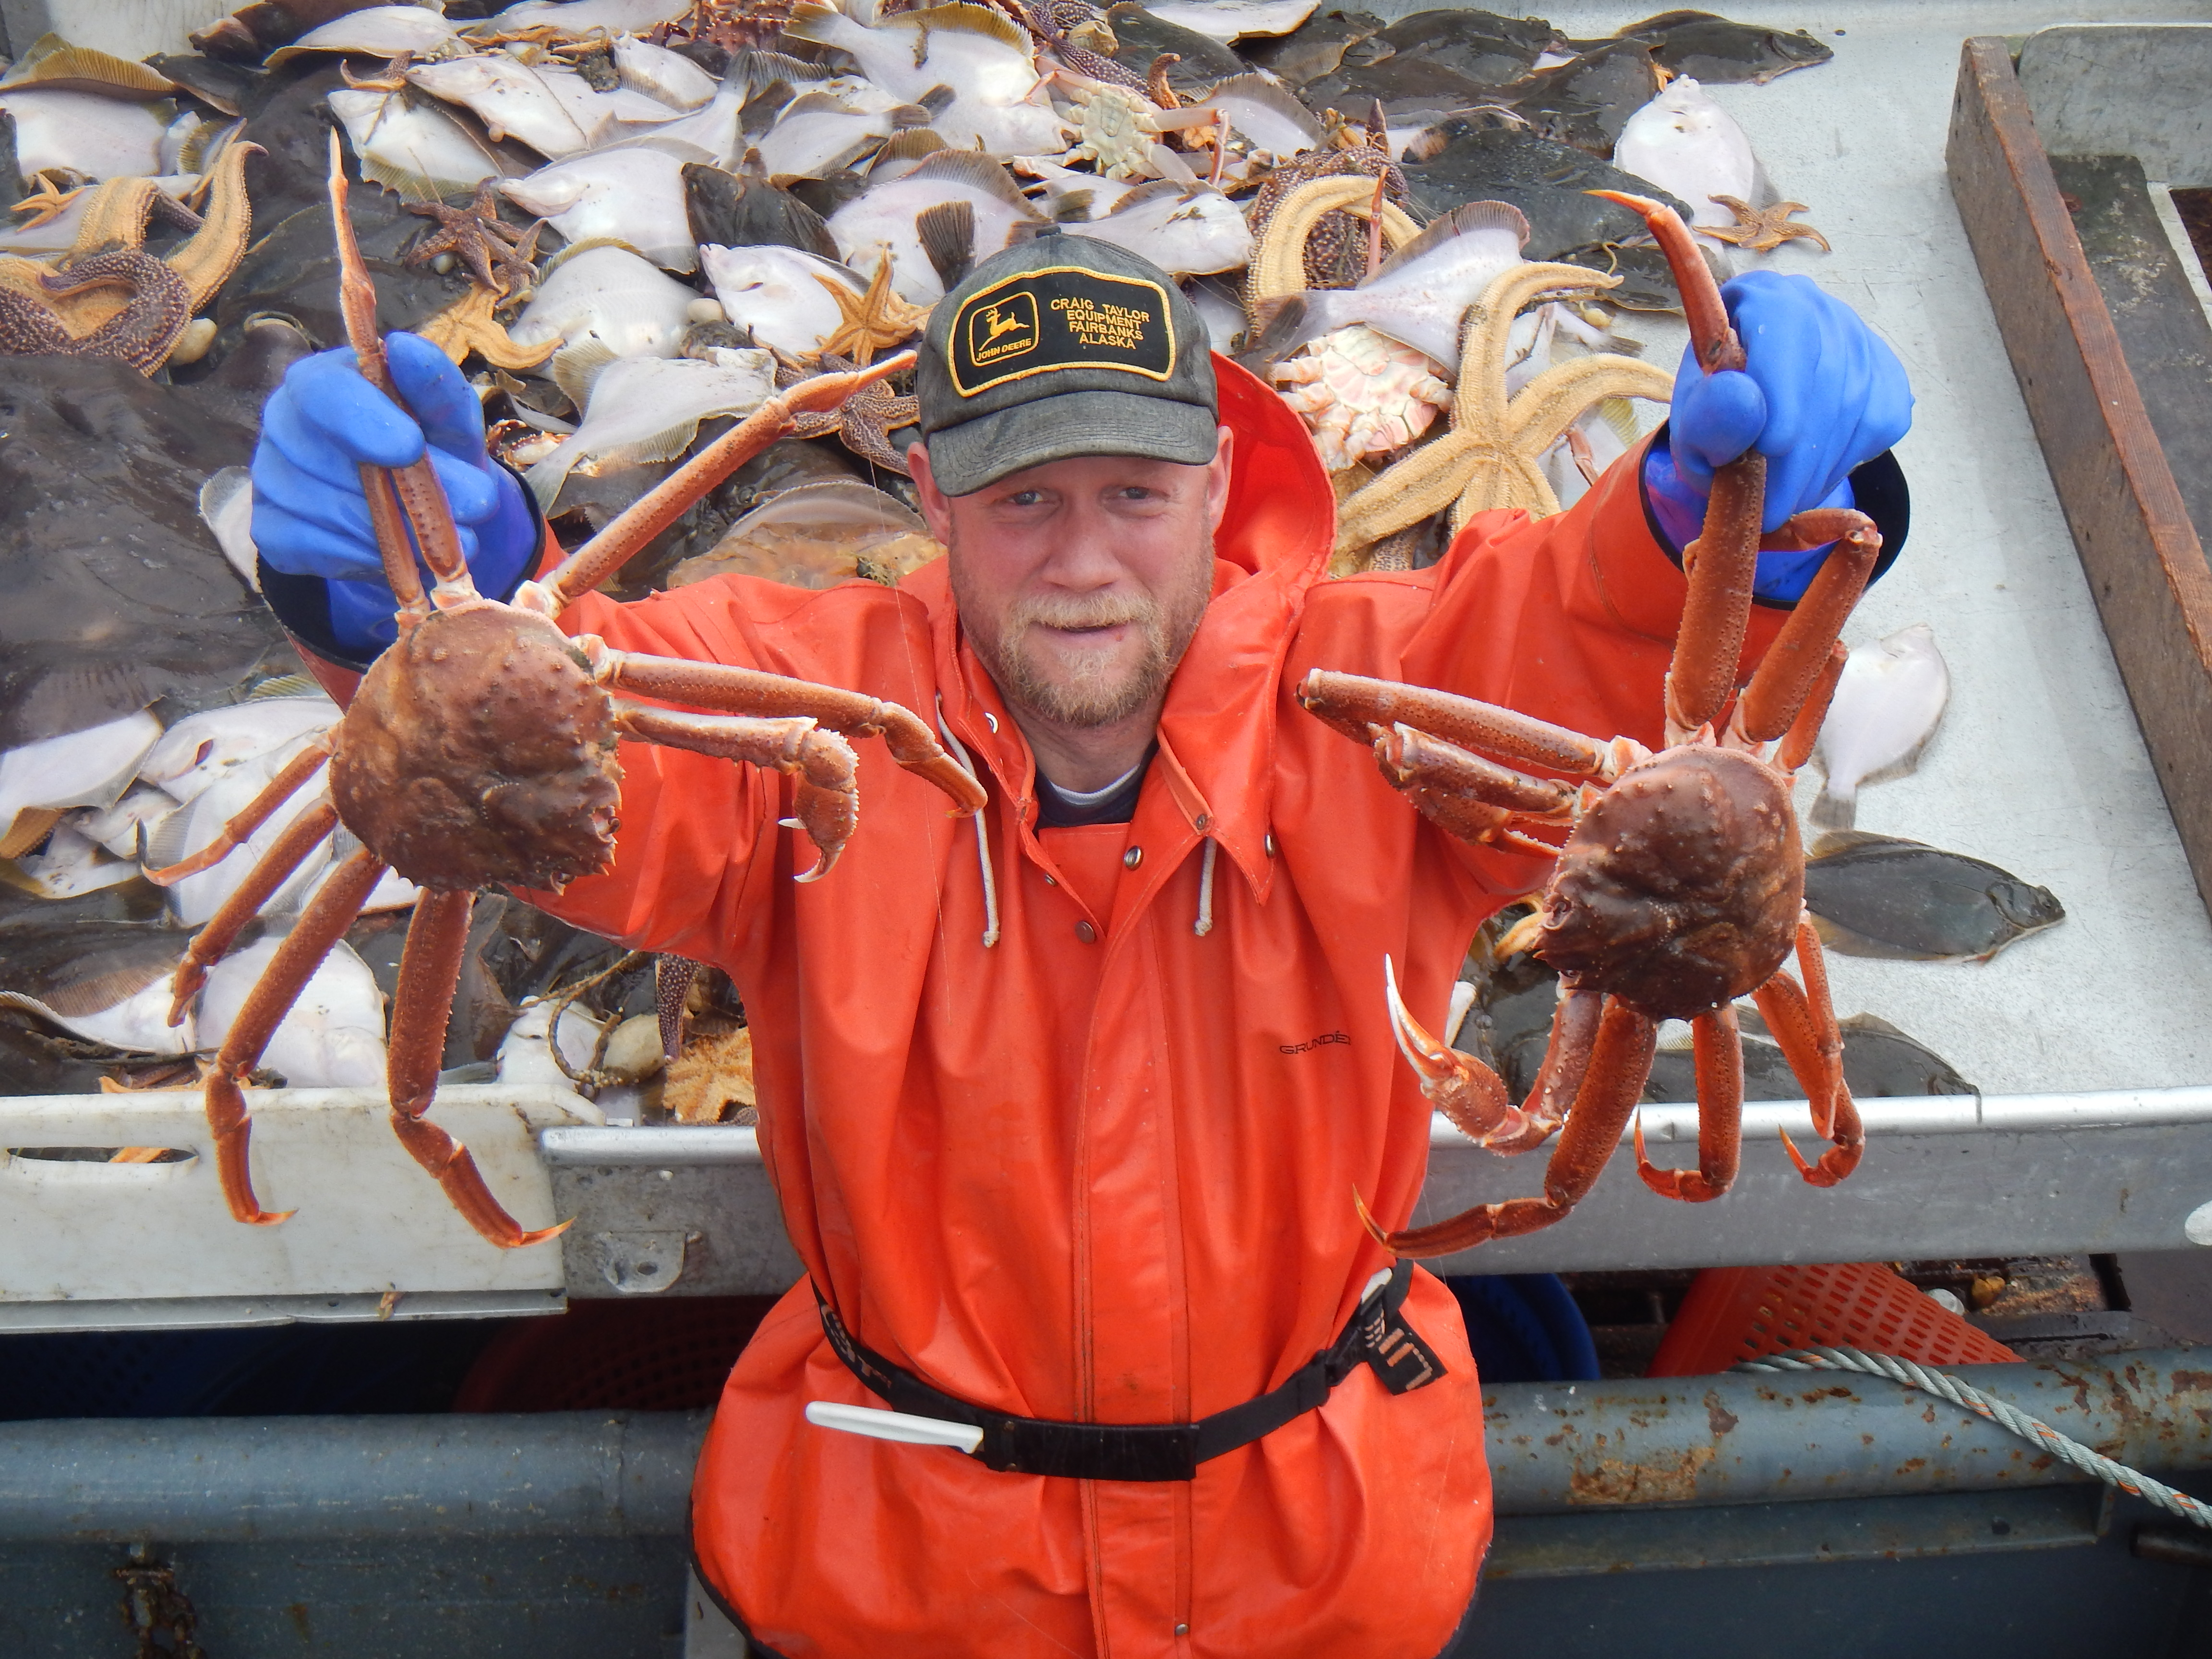 Bob Foy, director of the NOAA lab in Kodiak, holds up king crab, a species expected to be impacted by ocean acidification. (Photo courtesy NOAA's Fisheries Science Center)